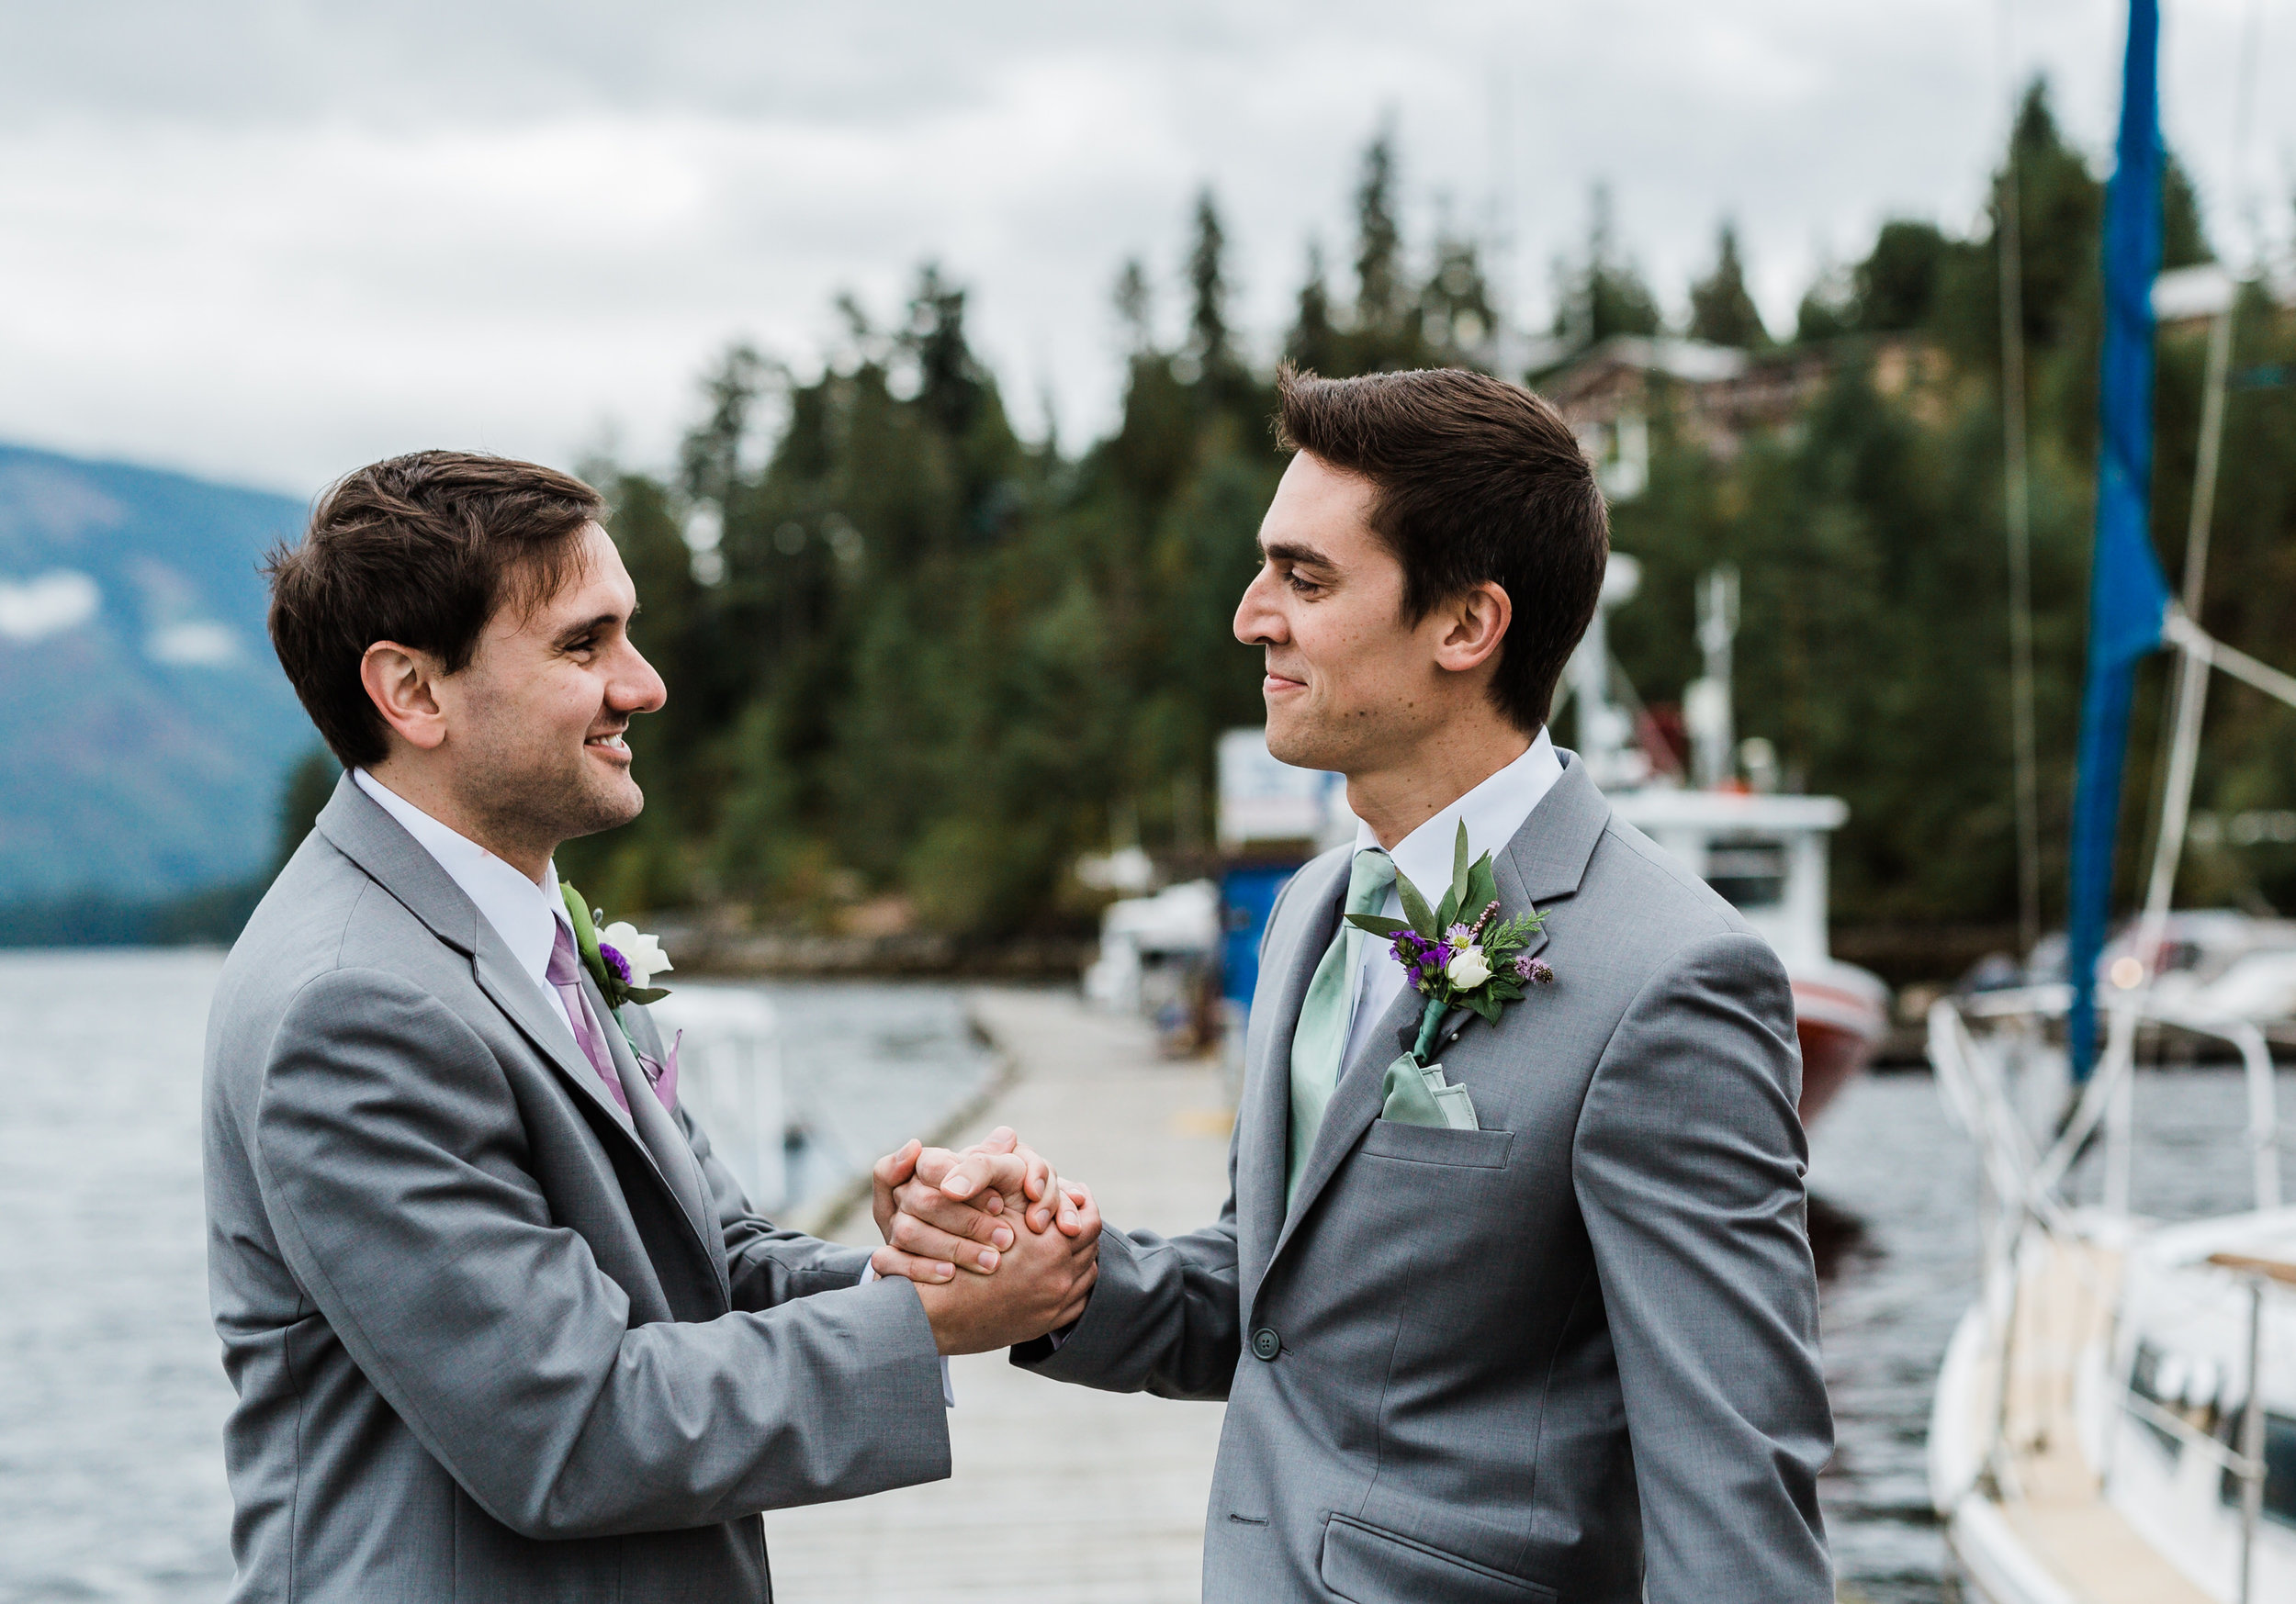 West Coast Wilderness Lodge Wedding Photos - Vancouver Wedding Photographer & Videographer - Sunshine Coast Wedding Photos - Sunshine Coast Wedding Photographer - Jennifer Picard Photography - IMG_6072.jpg